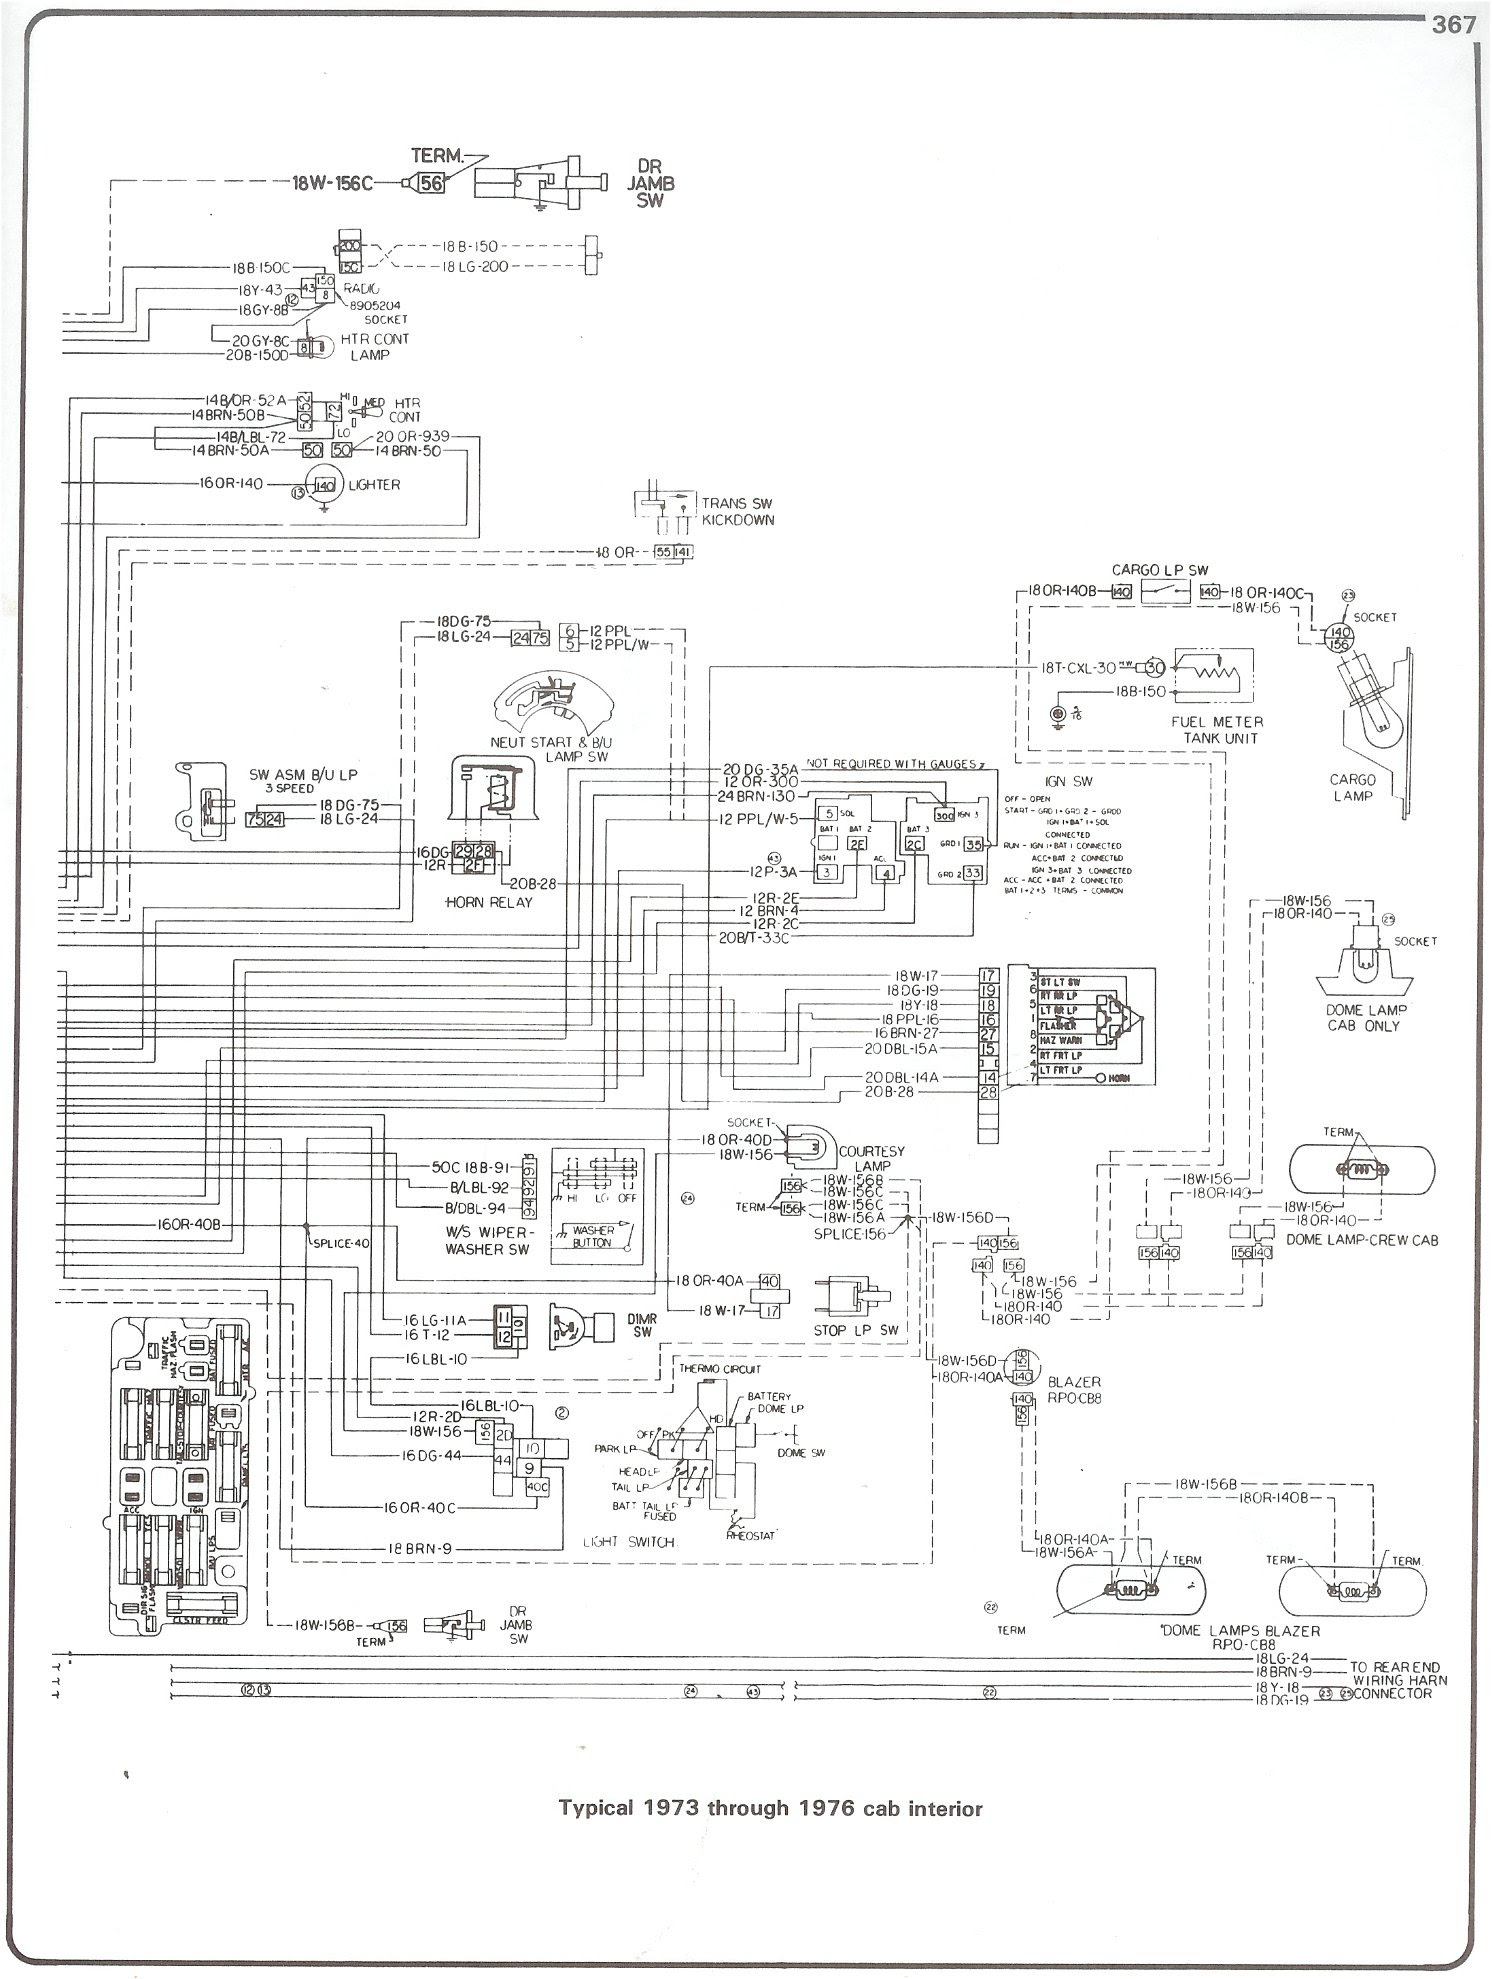 1976 Gmc Truck Wiring Diagram Wiring Diagram Approval A Approval A Zaafran It